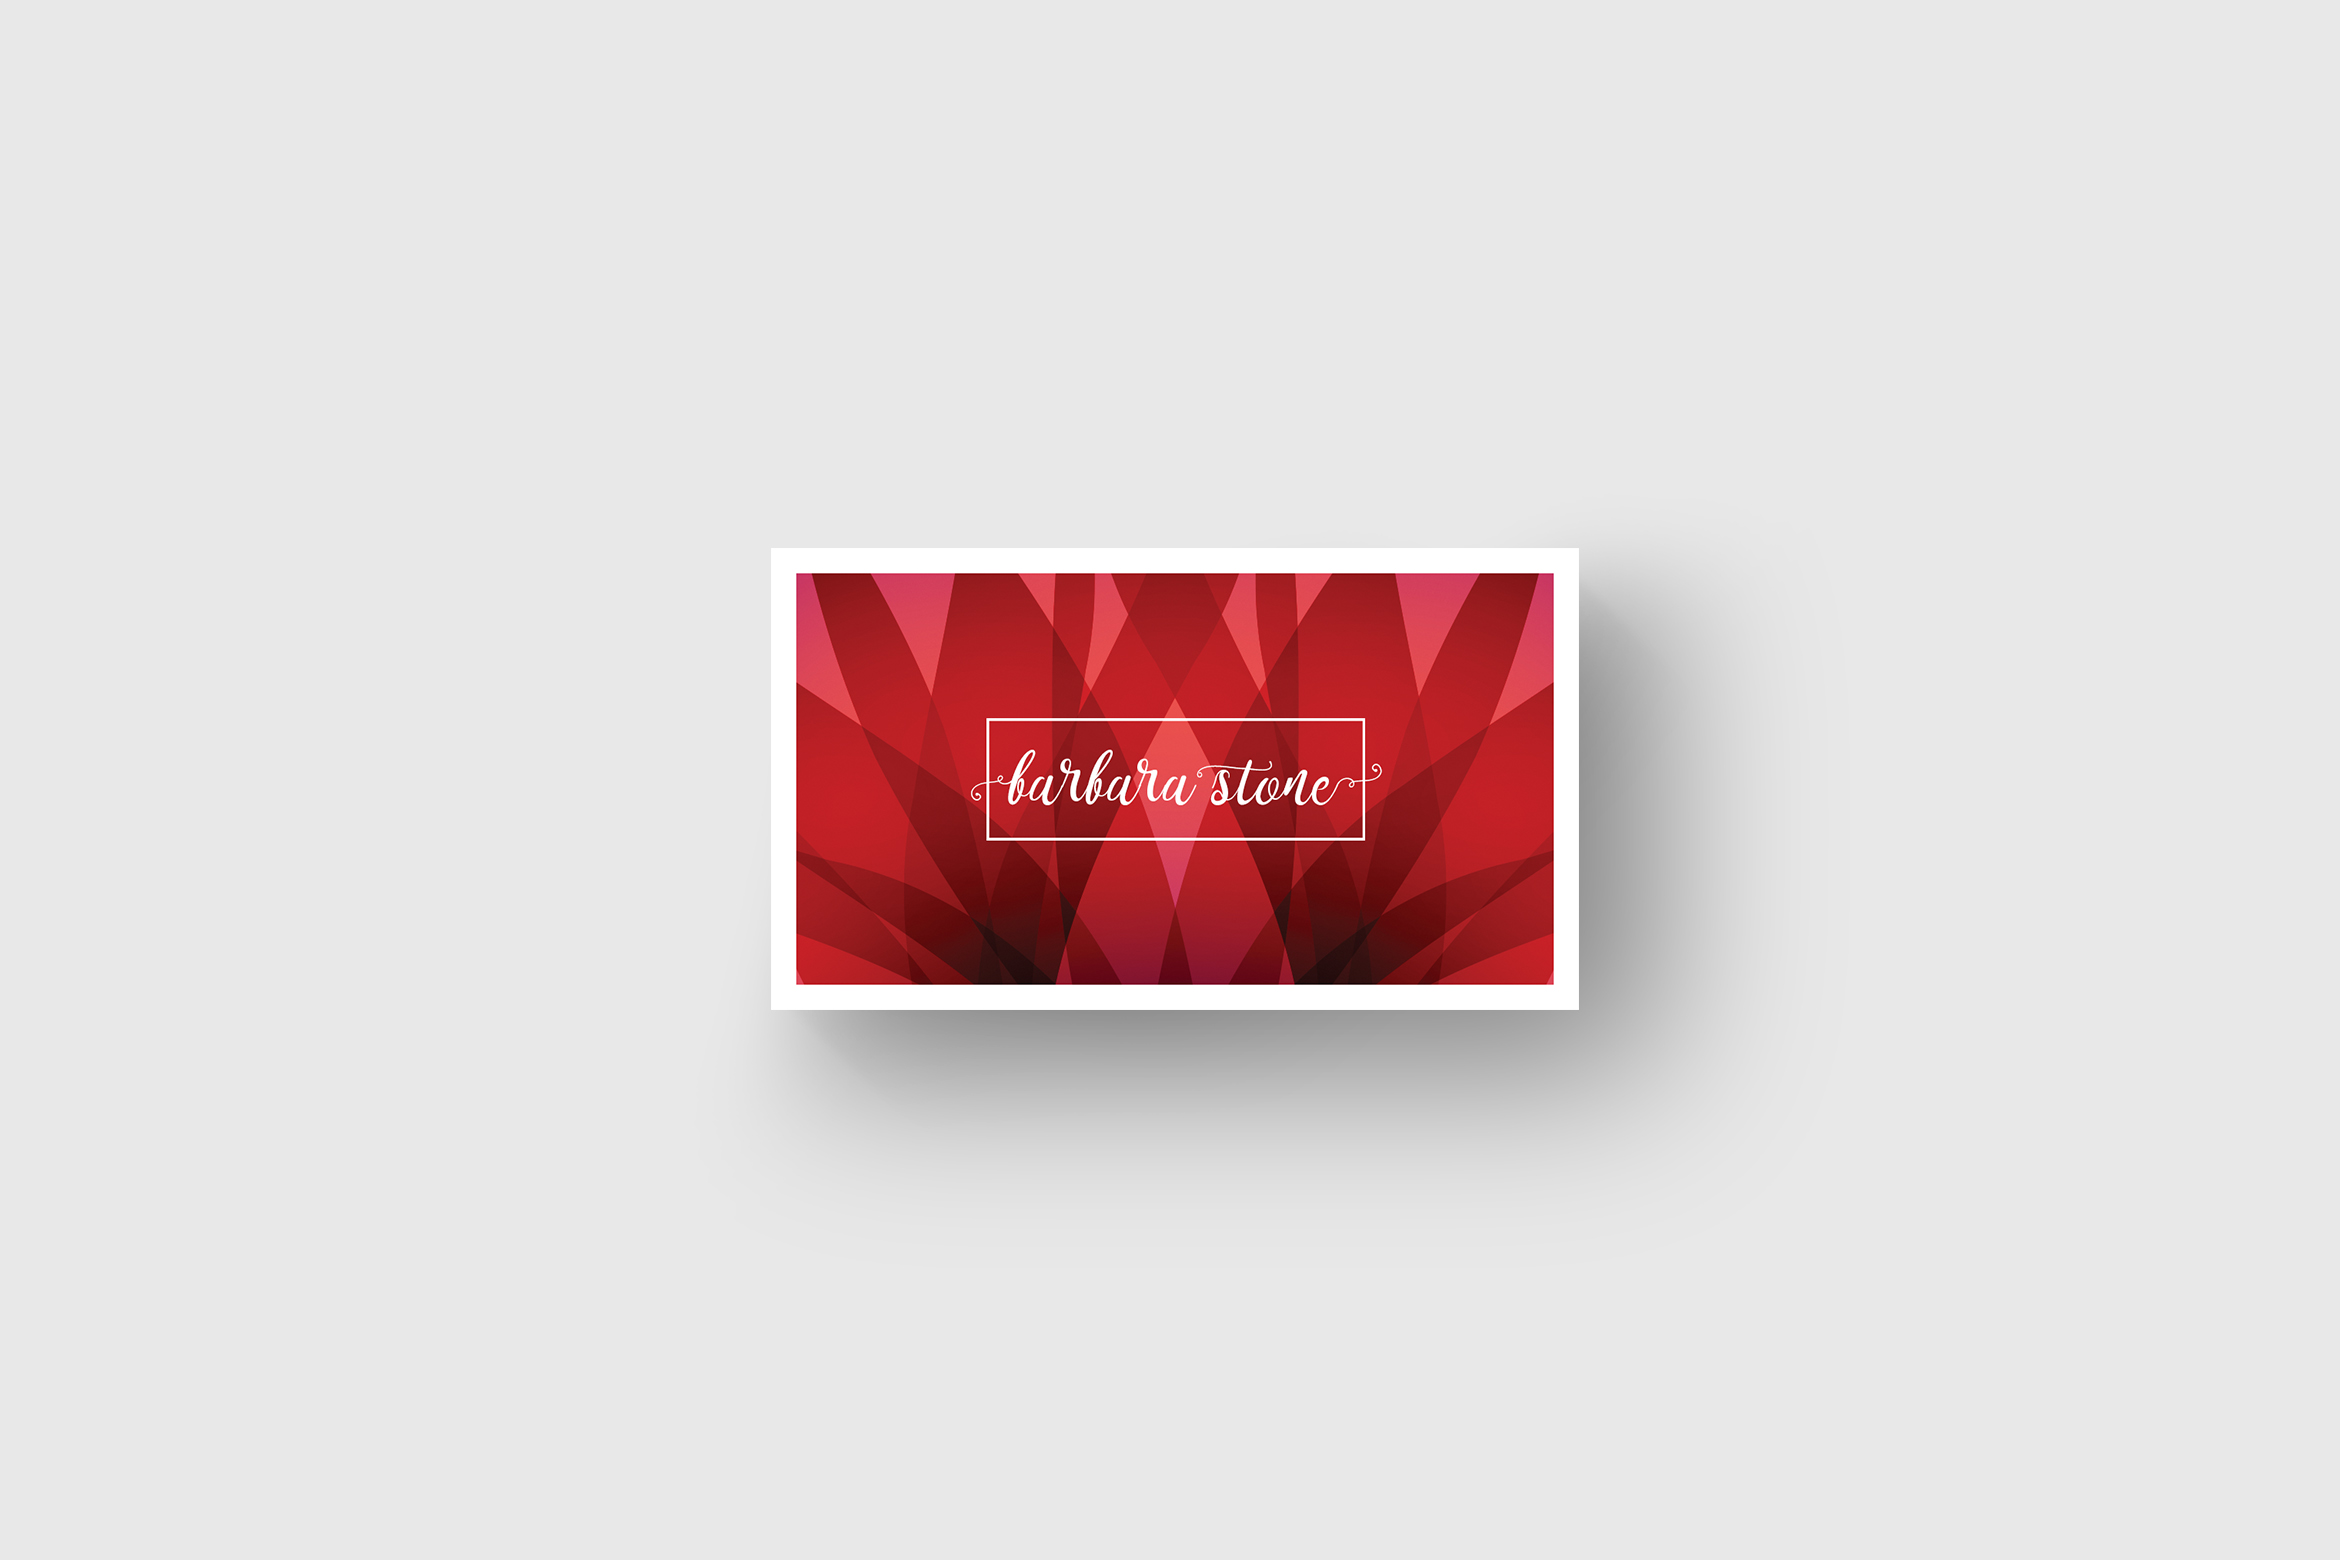 Business card template with abstract re design bundles business card template with abstract red background example image 4 reheart Gallery